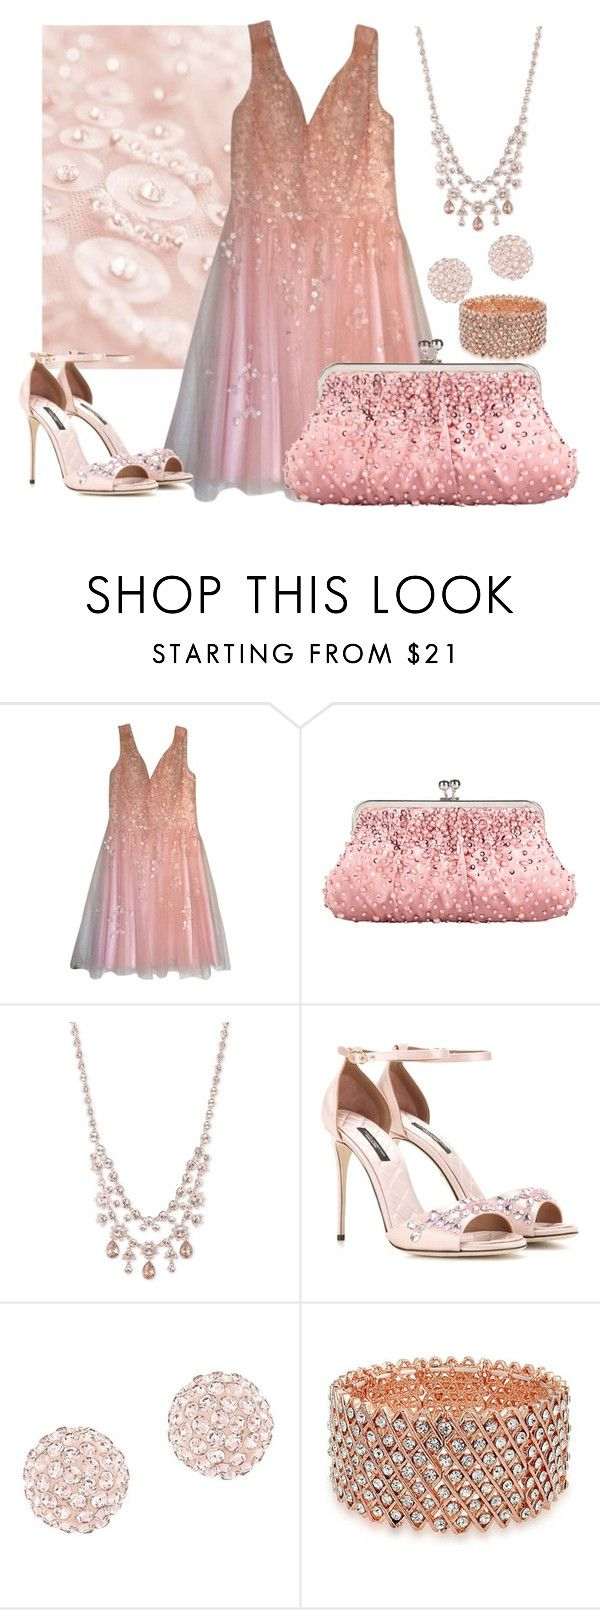 """""""Pink Satin & Beads"""" by itsablingthing ❤ liked on Polyvore featuring Kathy Hilton, Givenchy, Dolce&Gabbana, Swarovski and Bling Jewelry"""